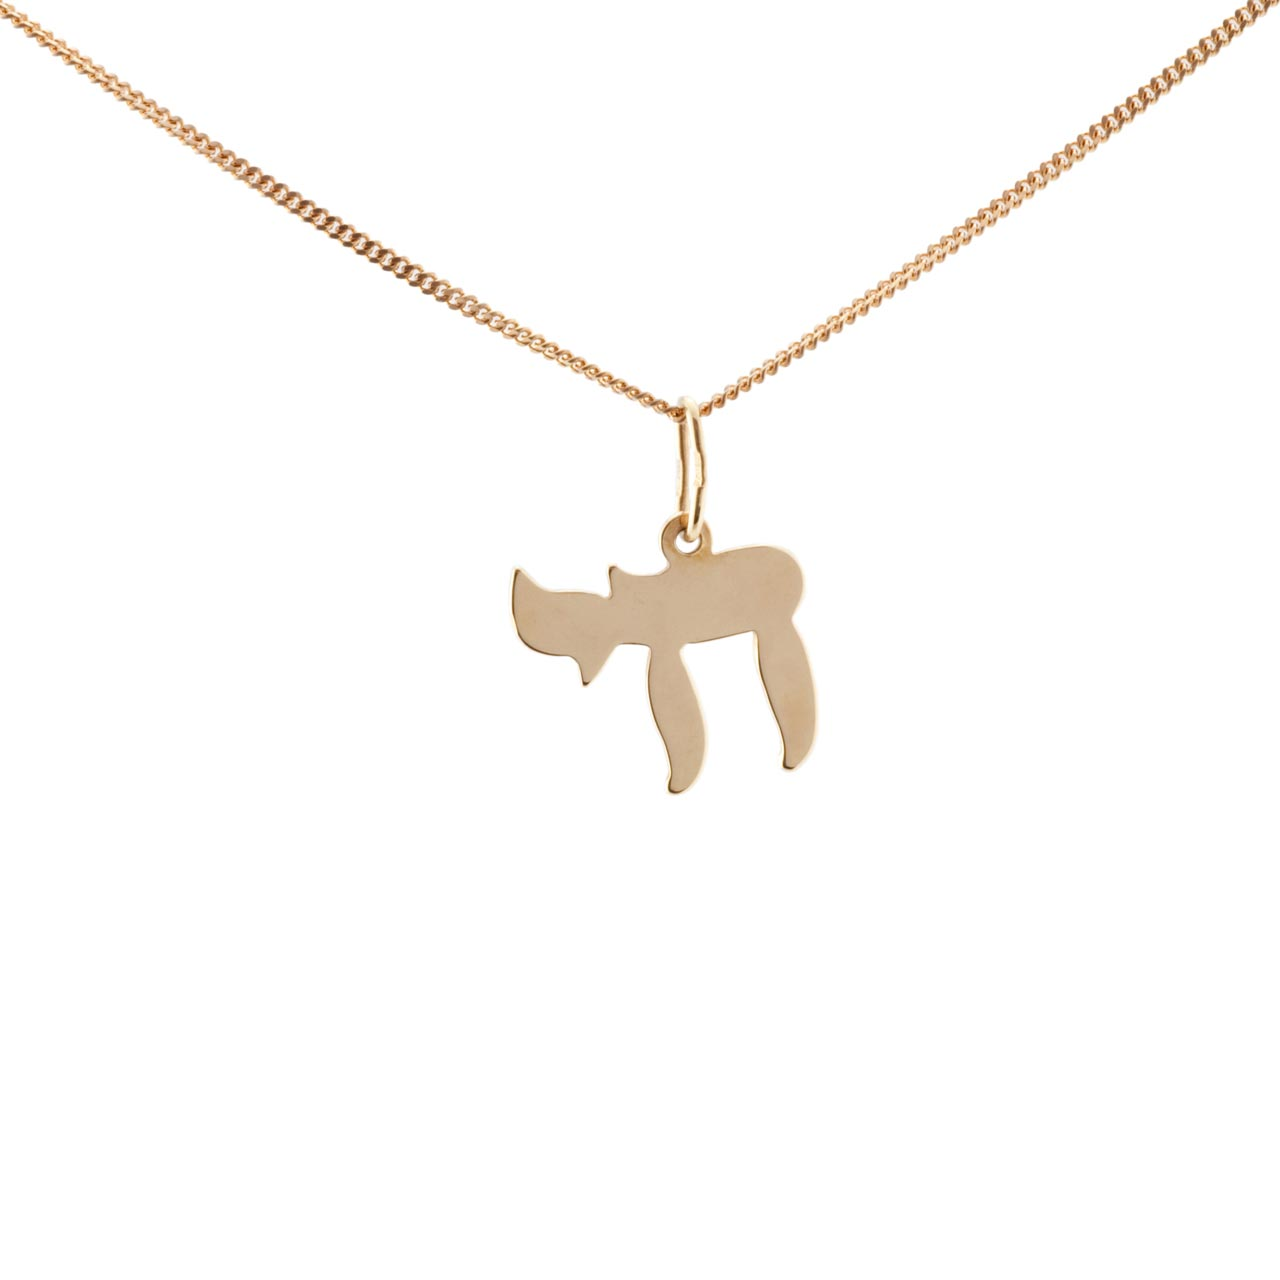 hop pendants necklace product handmade jewish hiphop retail jewellery steel gold pendant hot new chai symbol stainless exaggerated wholesale plated hip